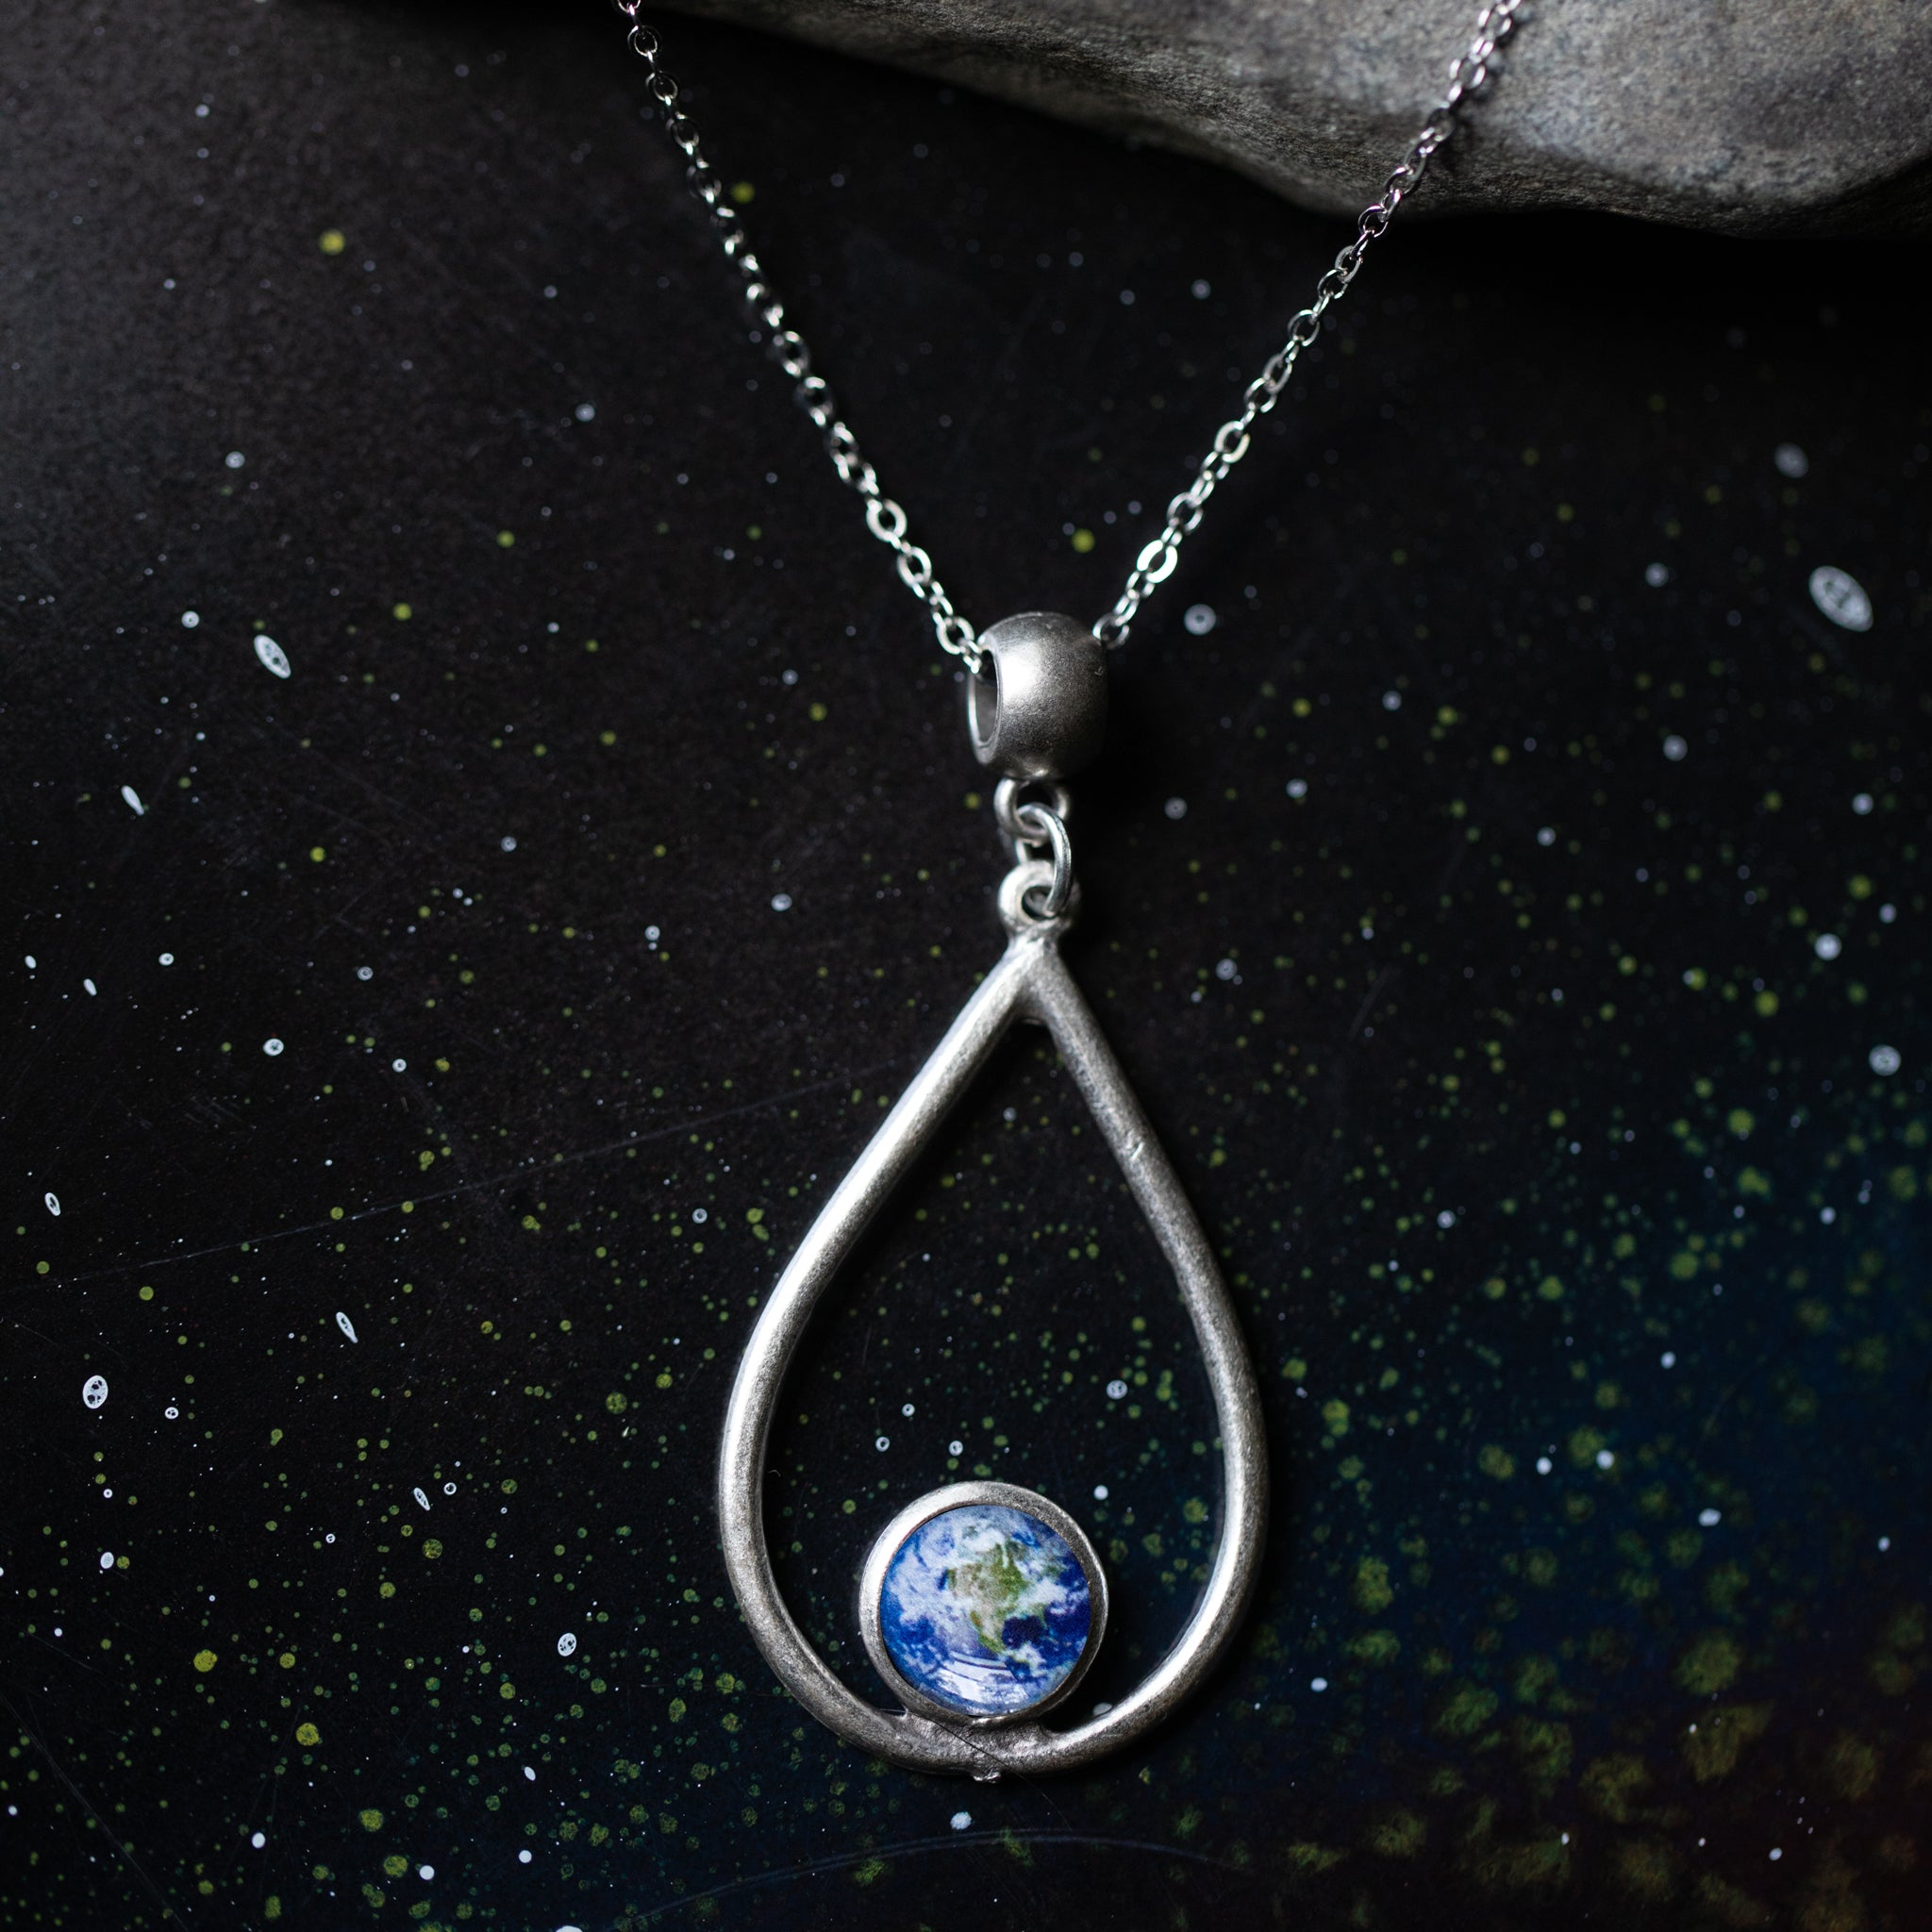 Teardrop necklace with small round custom outer space image - universe jewelry with planet, nebula, galaxy, moon, sun - Handmade by women for STEM astronomy fashion, yugentribe in silver